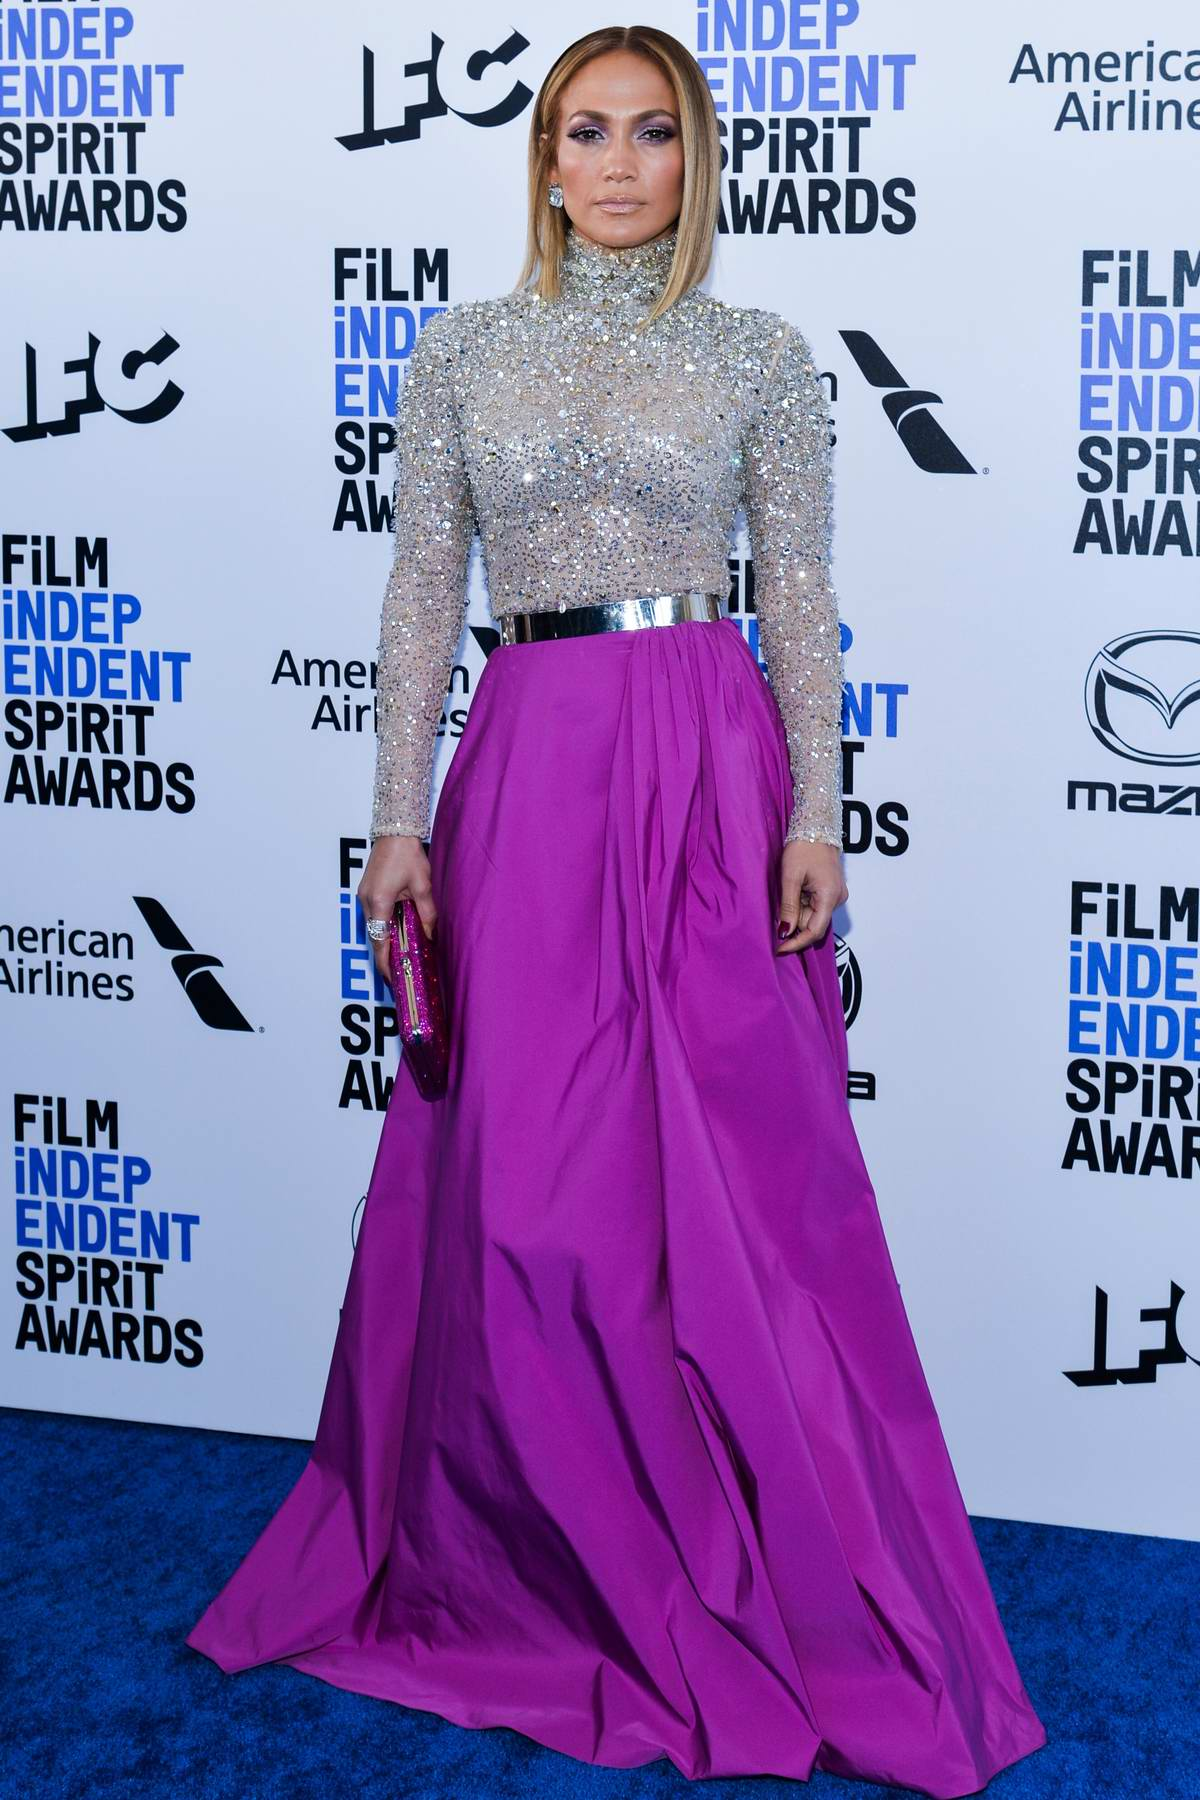 Jennifer Lopez attends the 2020 Film independent Spirit Awards at The Barker Hangar in Santa Monica, California